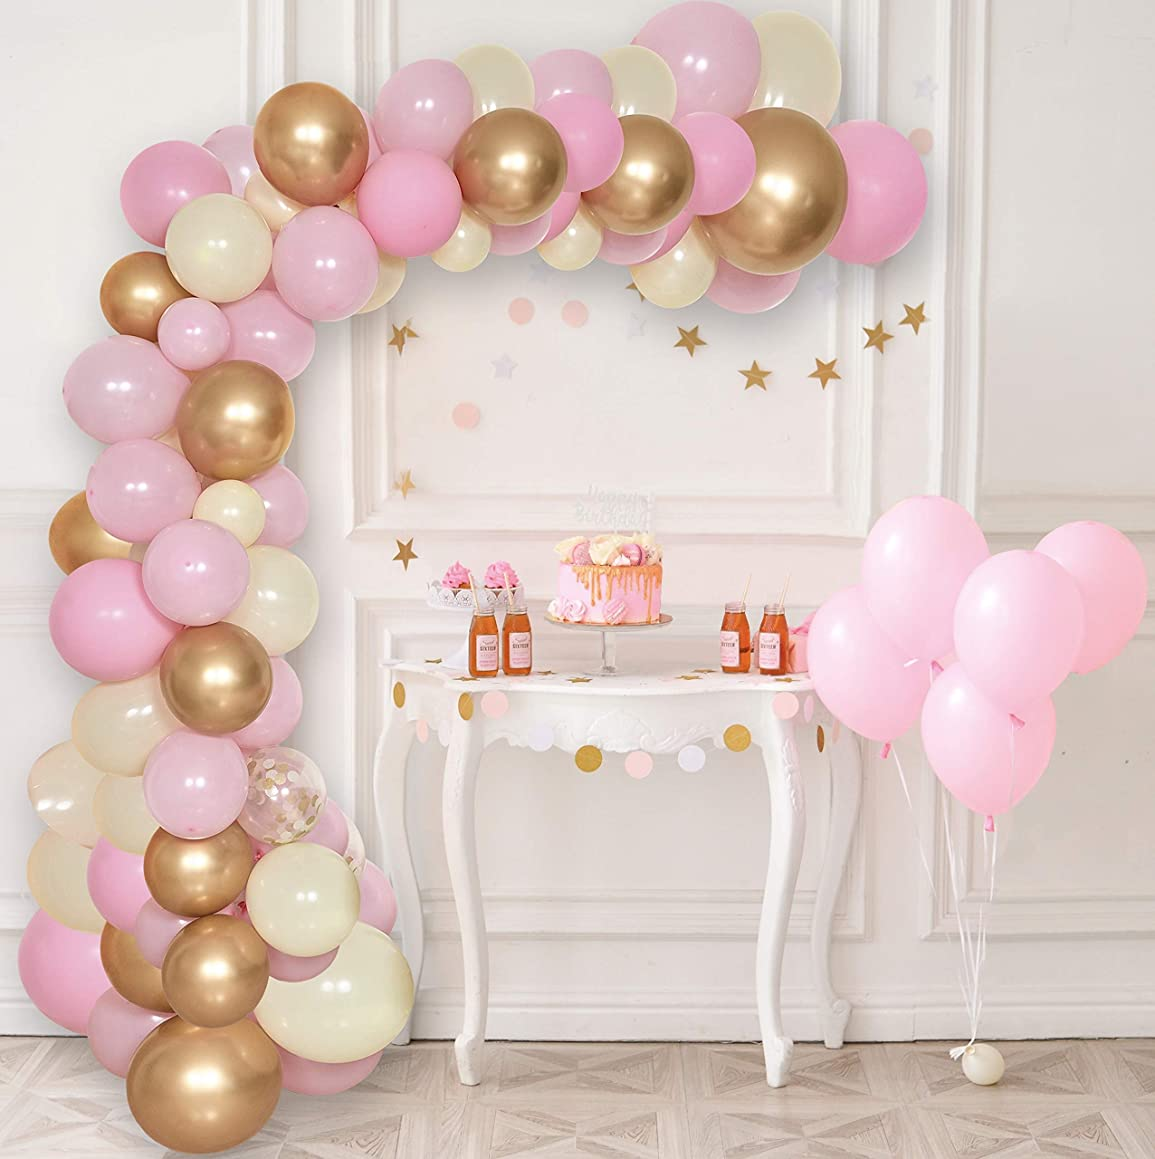 Balloon Arch & Garland Kit | 60 Gold, Pink, Yellow & Confetti Balloons | 16' Decorating Strip Tape | Glue Dots | Tying Tool | DIY Birthday, Wedding, Baby Shower, Graduation, Anniversary & Party